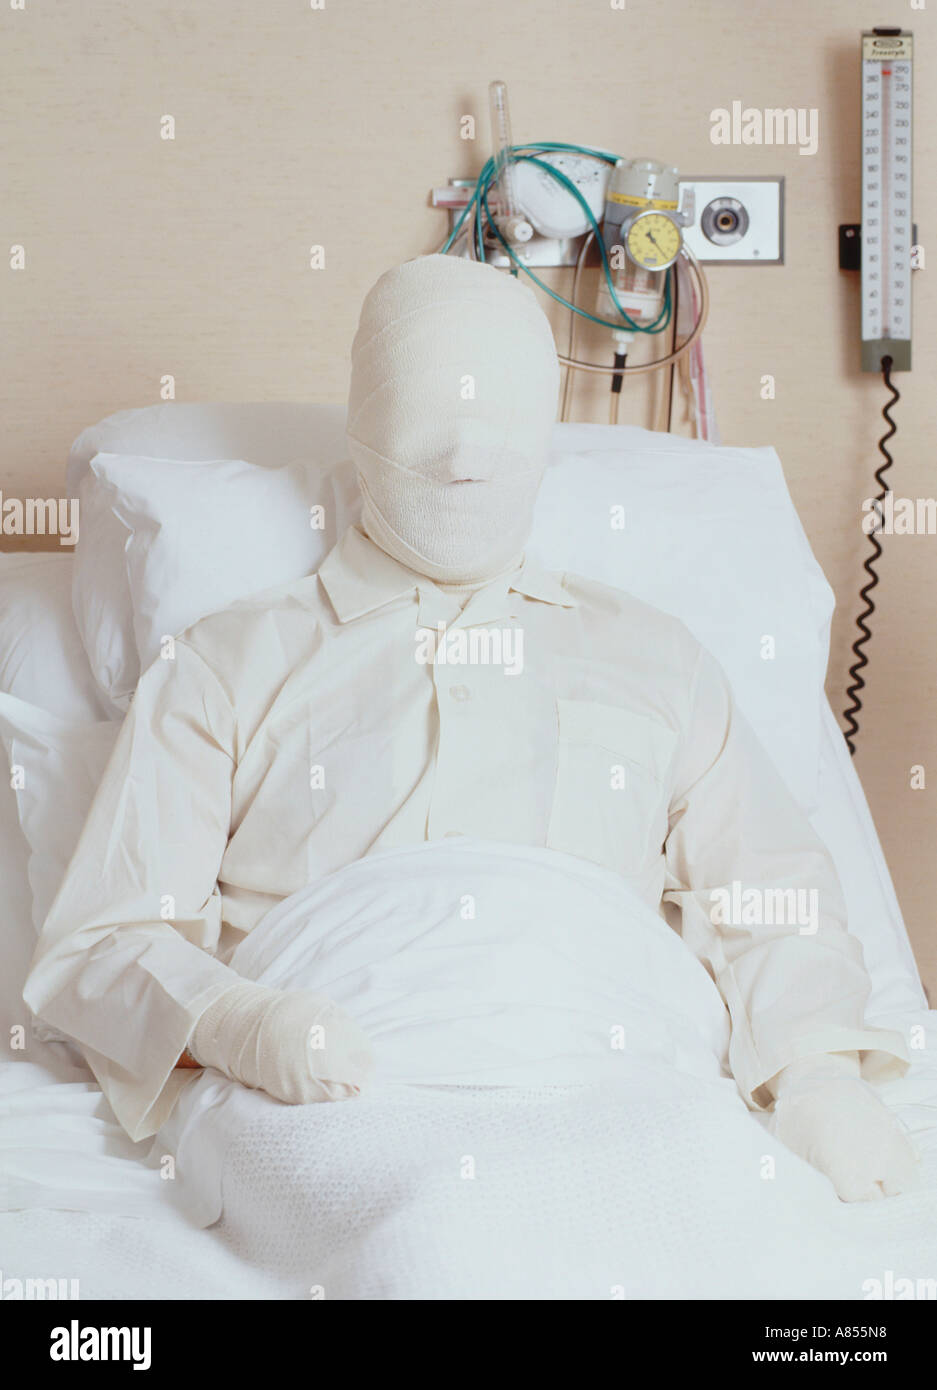 Male patient with serious burns bandaging lying in hospital bed Stock Photo  - Alamy